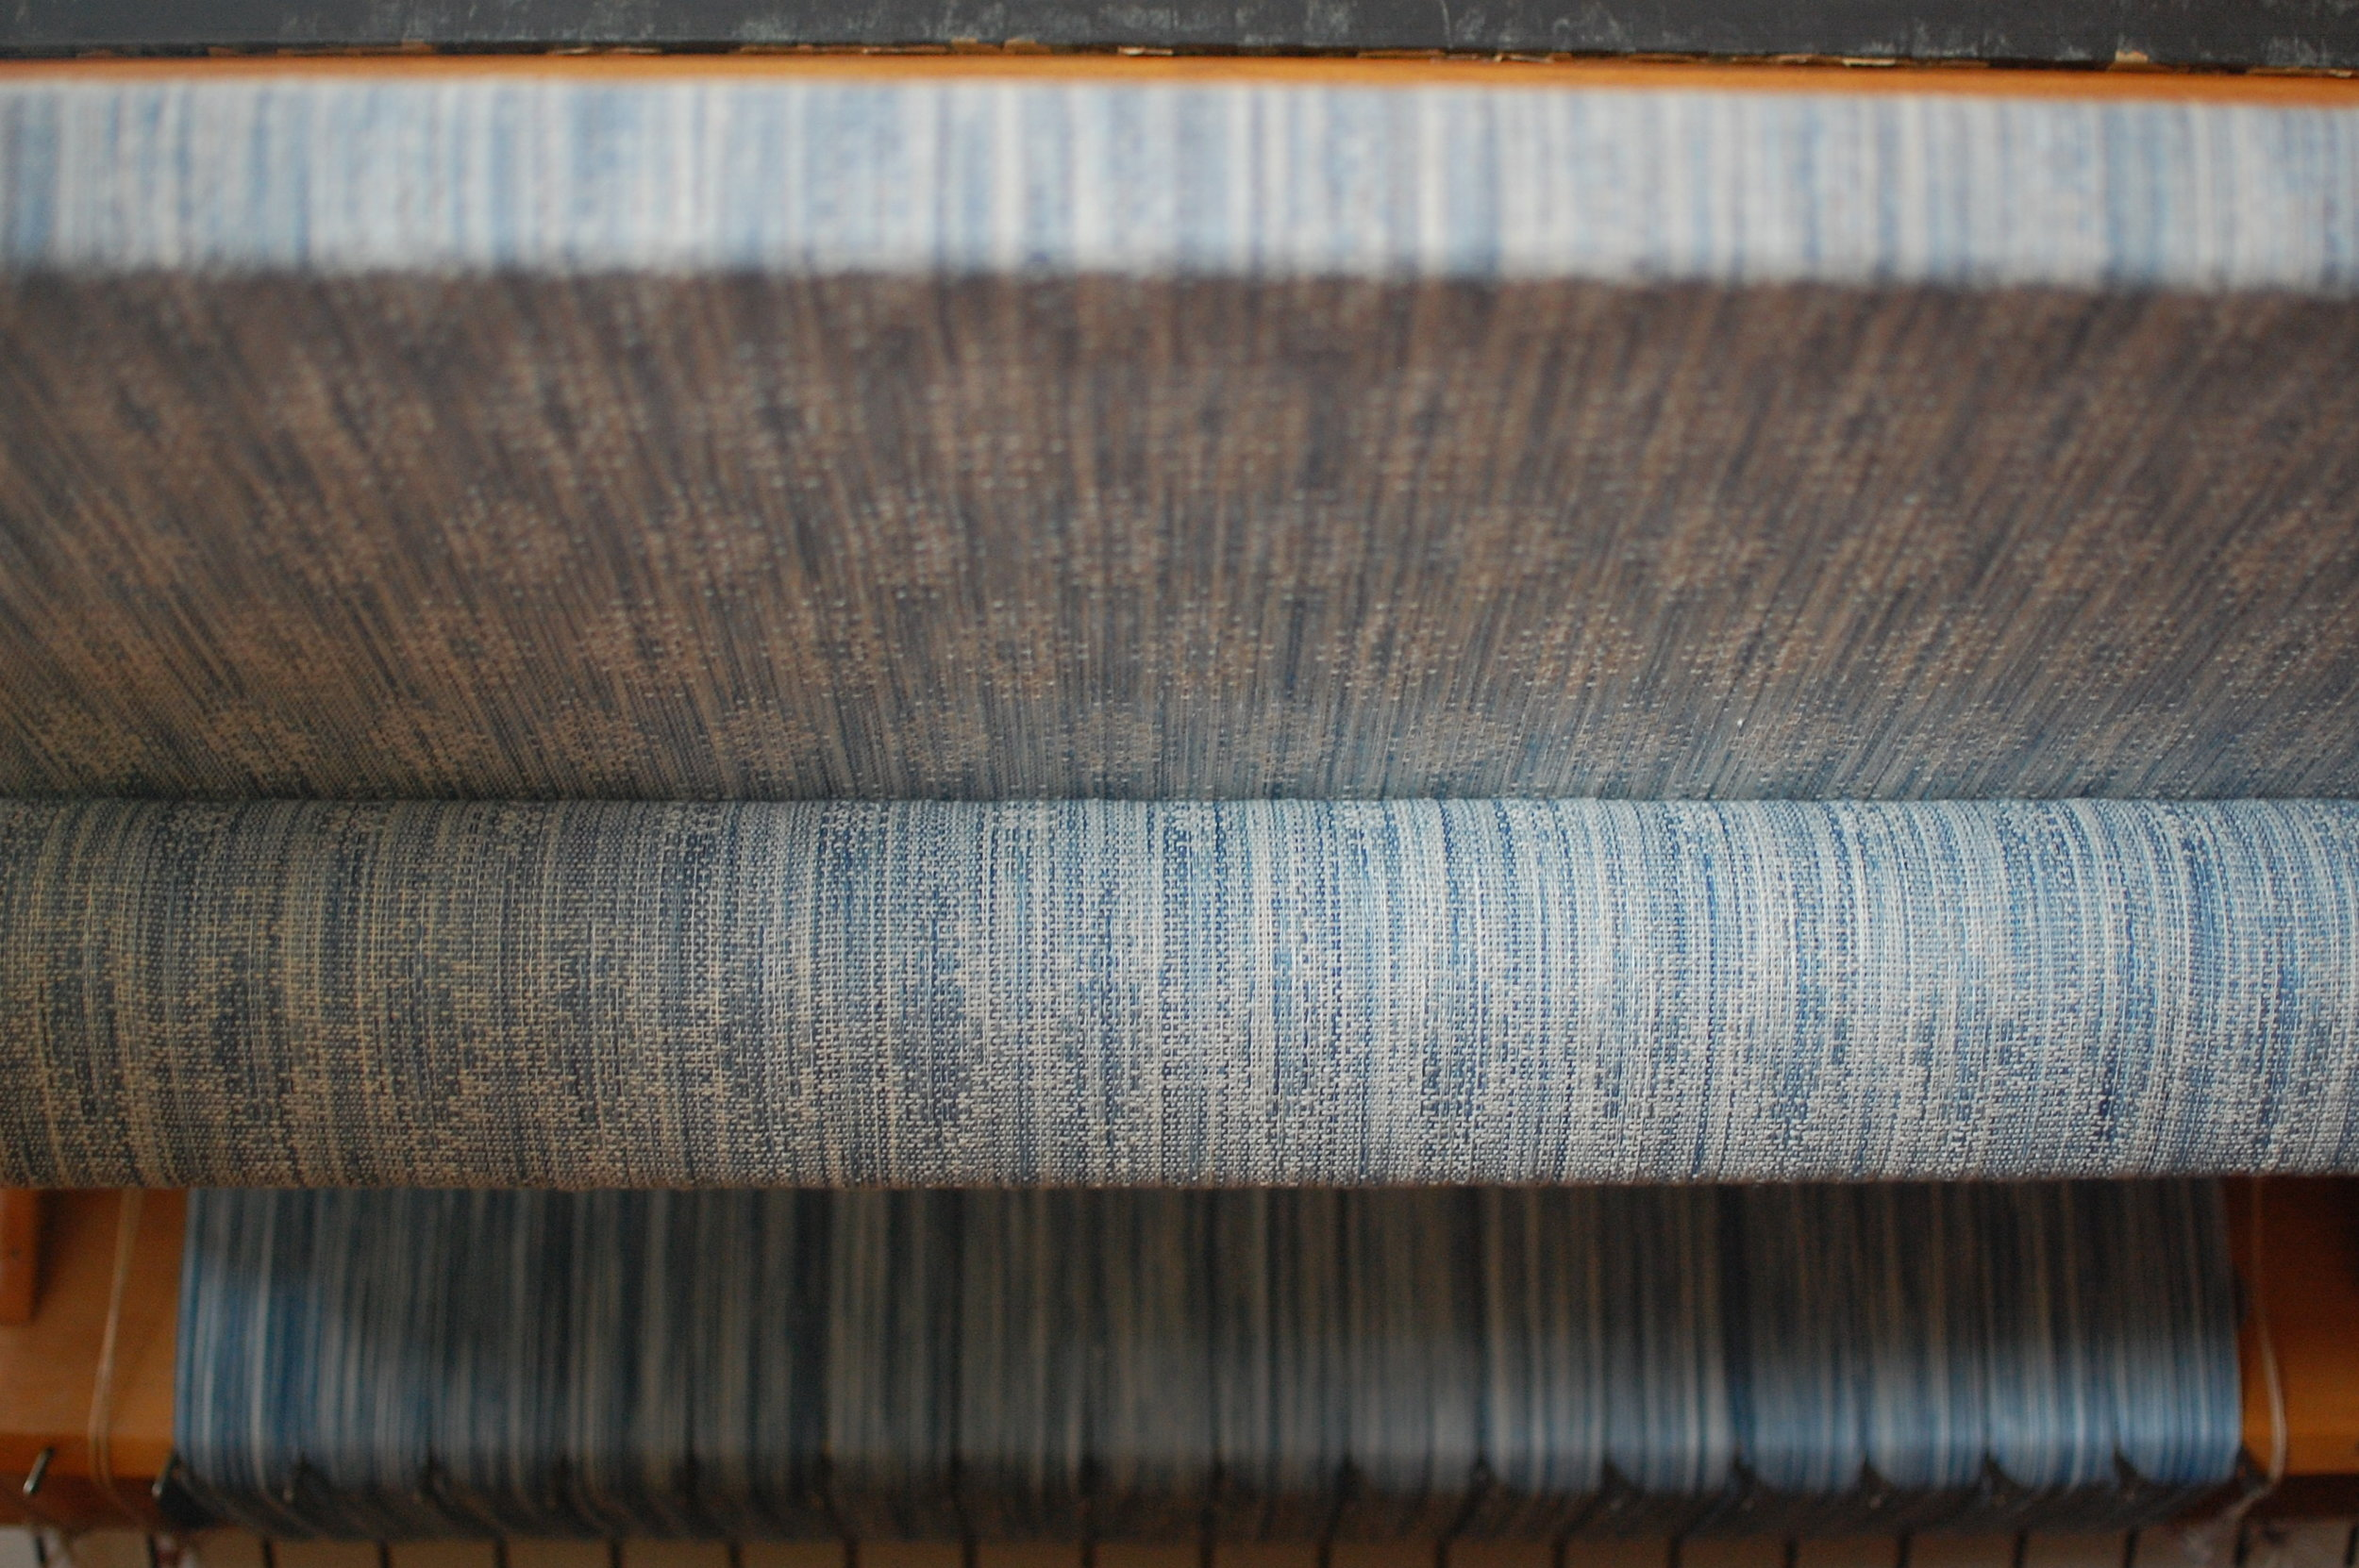 Indigo v.2 Blueprint with natural silk/cotton weft 5.0 meters - shown here during weaving